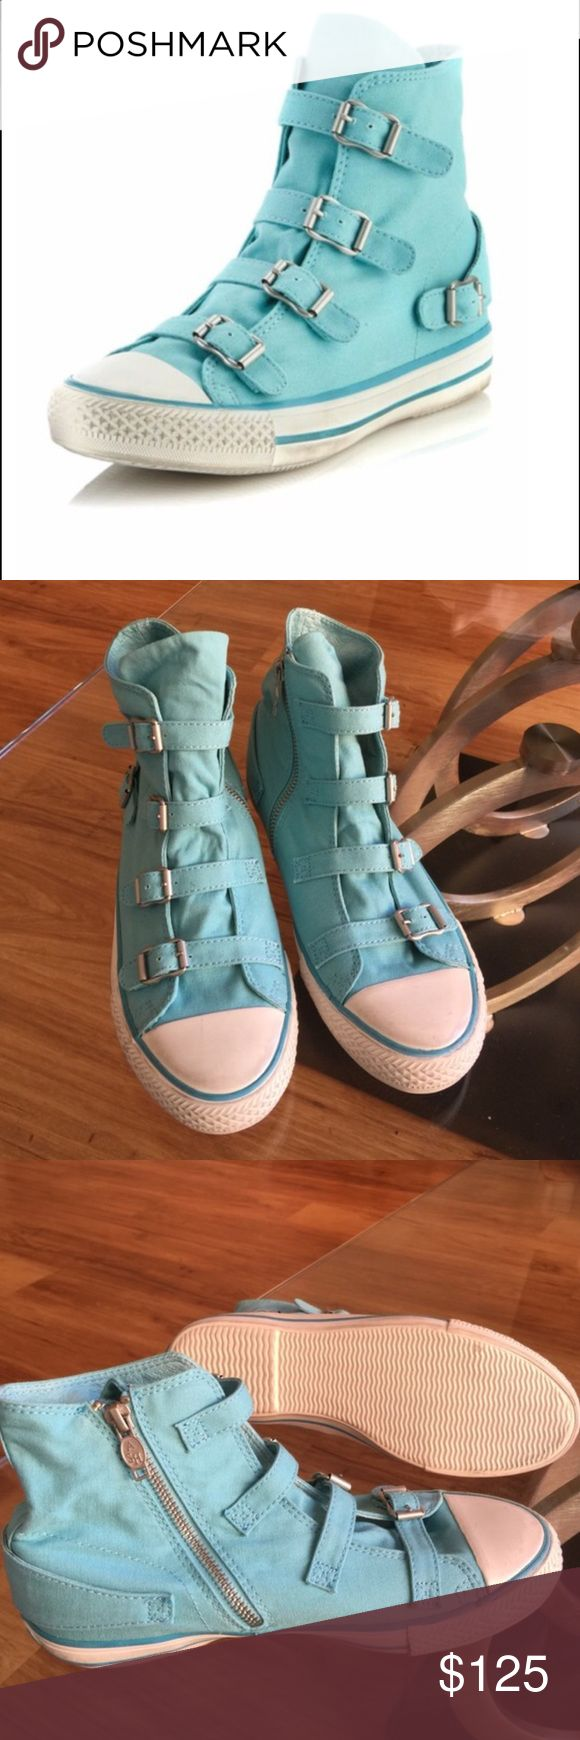 🆕ash sneakers ⭐️NWOT⭐️SMOKE/PET FREE HOME⭐️SOLD OUT COLOR. Canvas high tops with rubber cap toe, four buckled straps down front, side zip for ease, buckled detail on back, striped rubber midsole. Is meant to have a distressed look so markings are there purposely not from me wearing them. Ash Shoes Sneakers